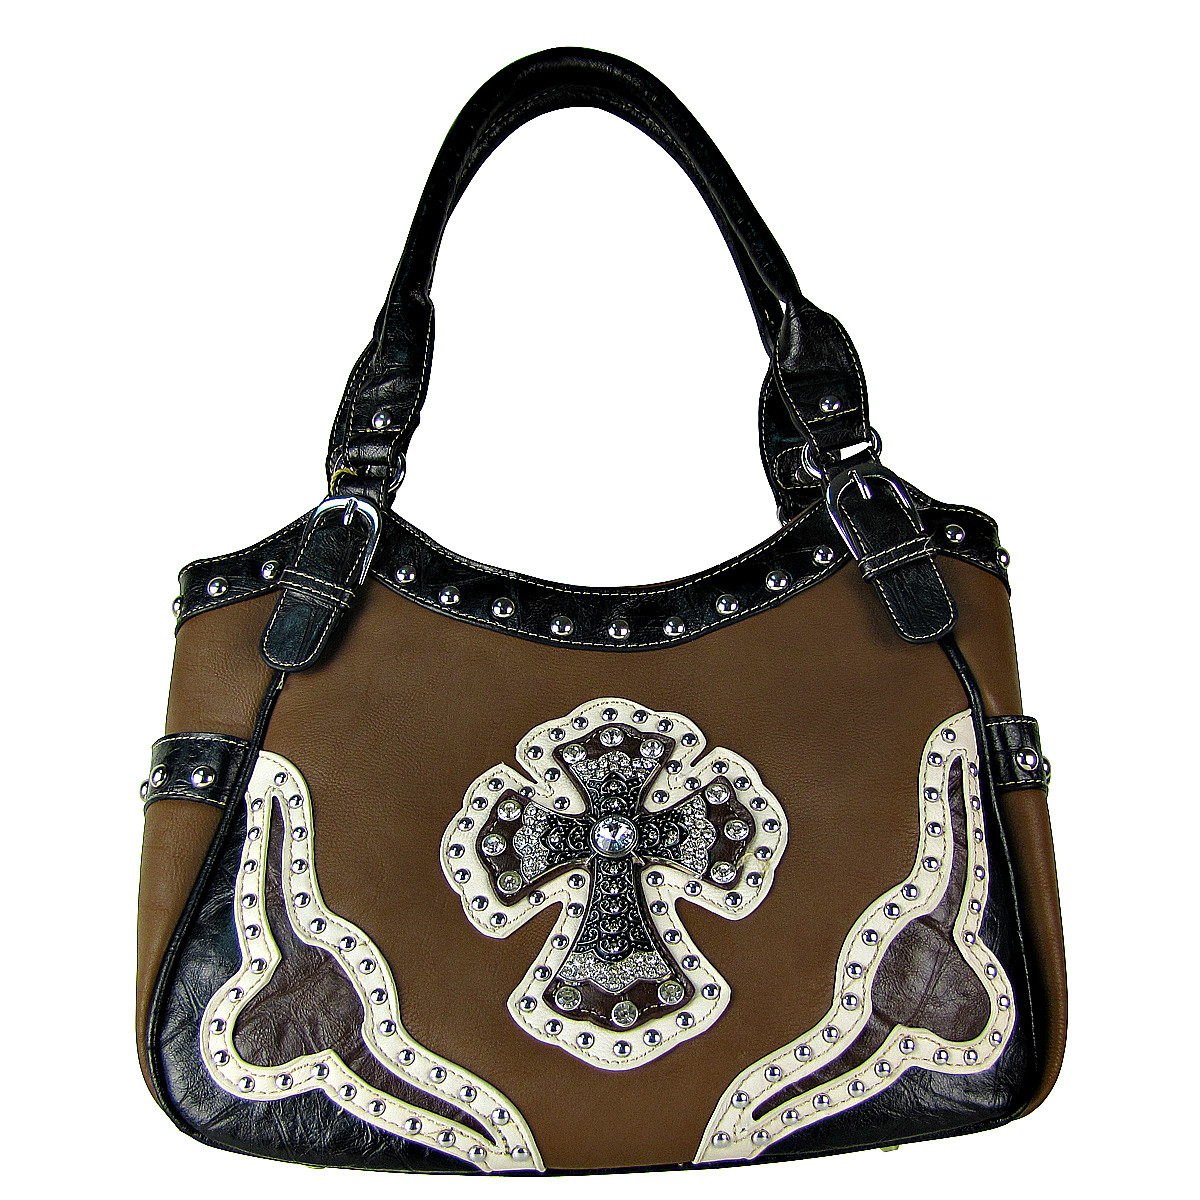 BROWN WESTERN RHINESTONE CROSS LOOK SHOULDER HANDBAG HB1-HC0087BRN